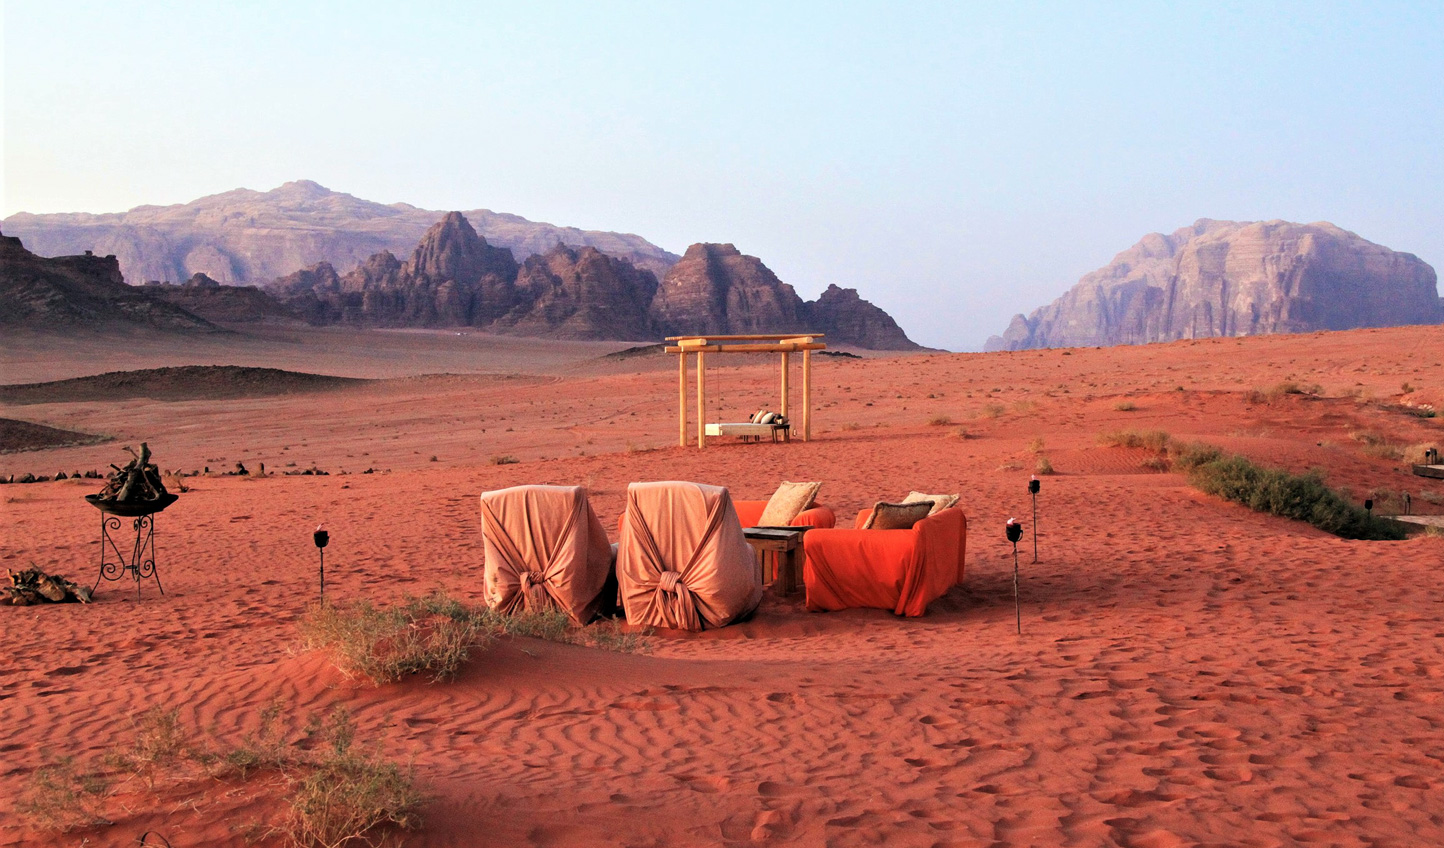 With the desert as your home, you'll enjoy total peace and quiet